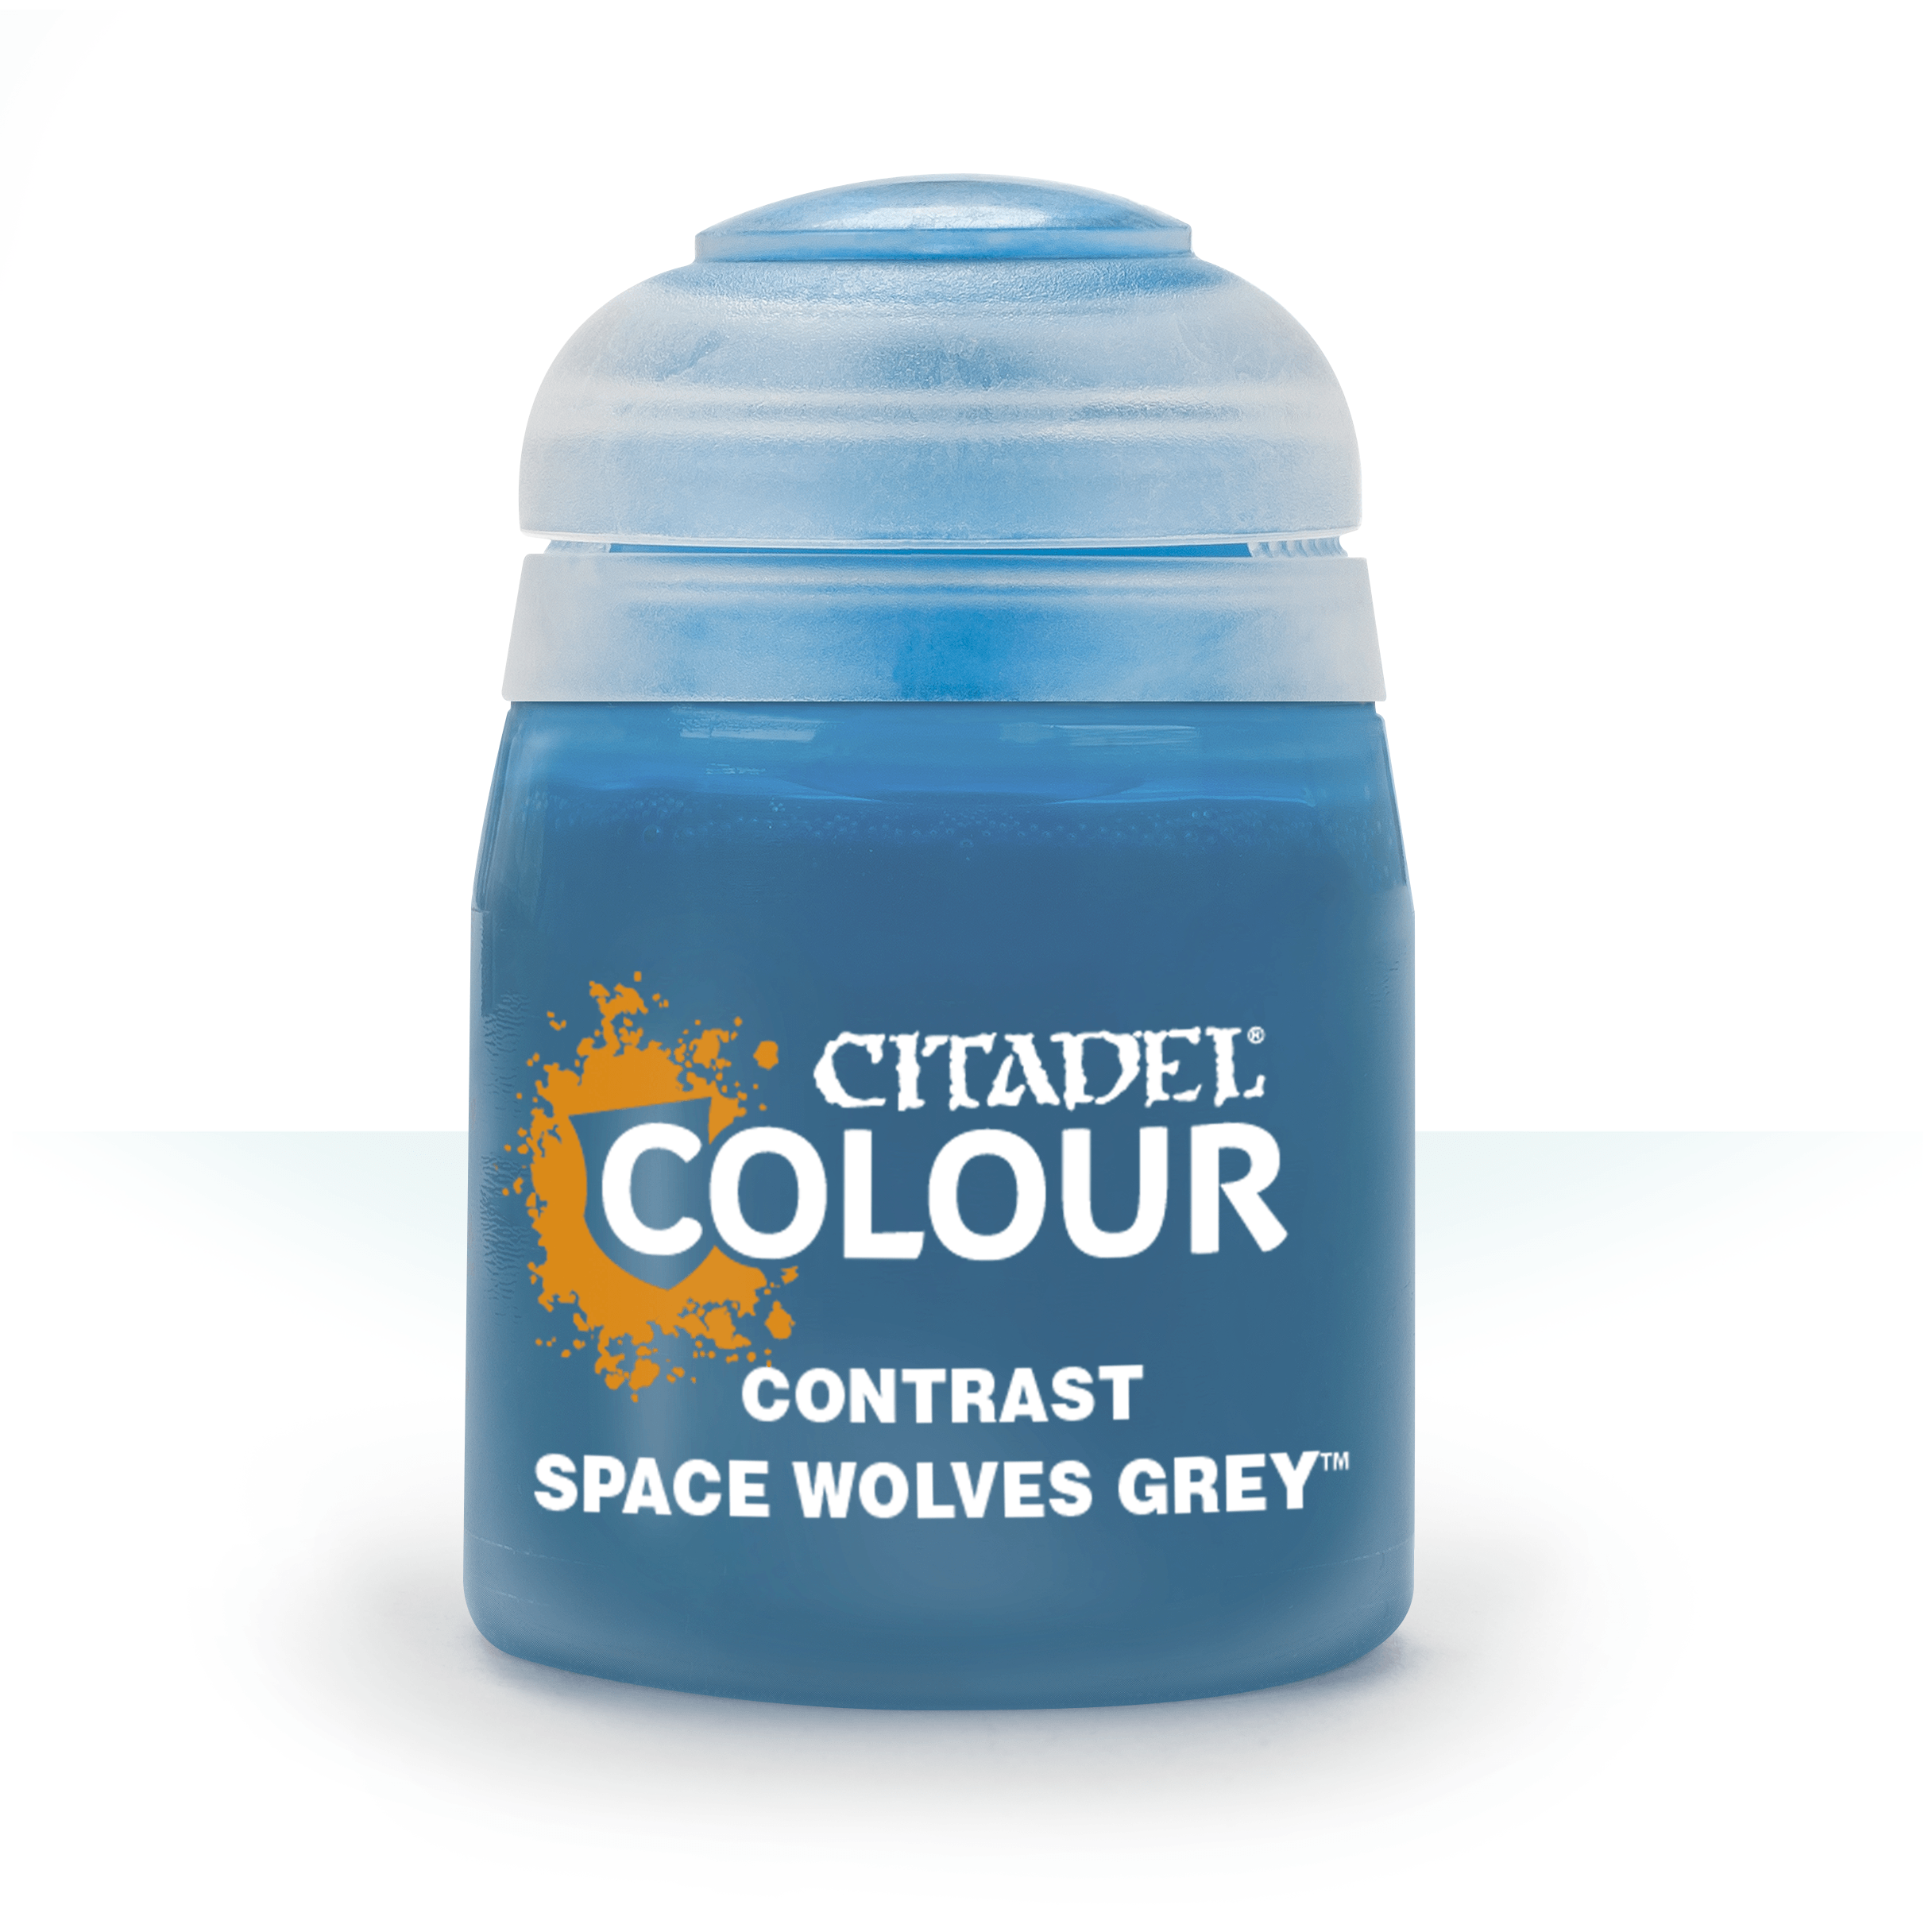 Space Wolves Grey, Citadel Contrast 18ml